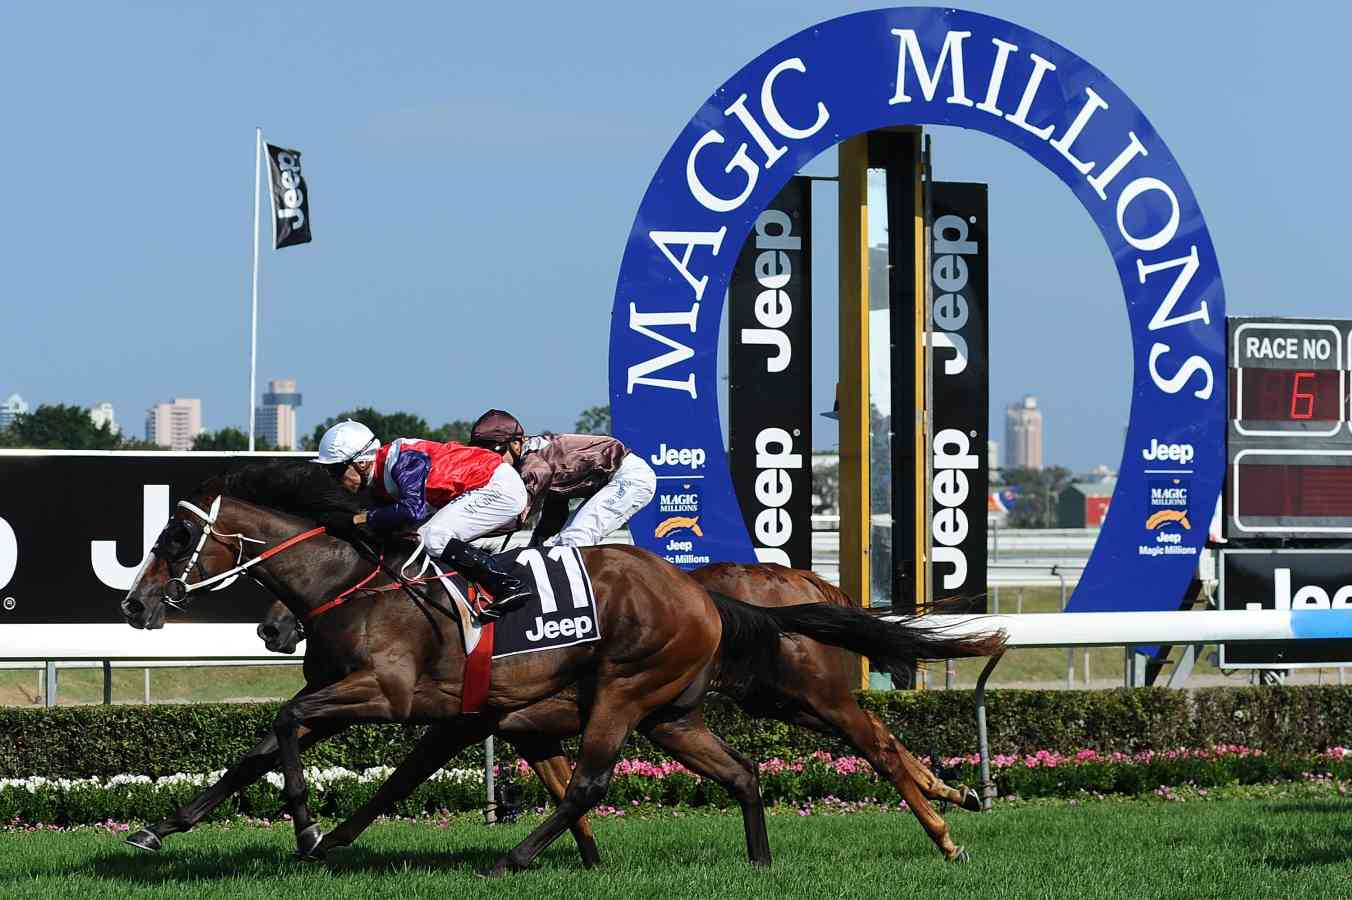 Magic-Millions-will-be-the-richest-race-day-in-Australia-1418944228_1352x900